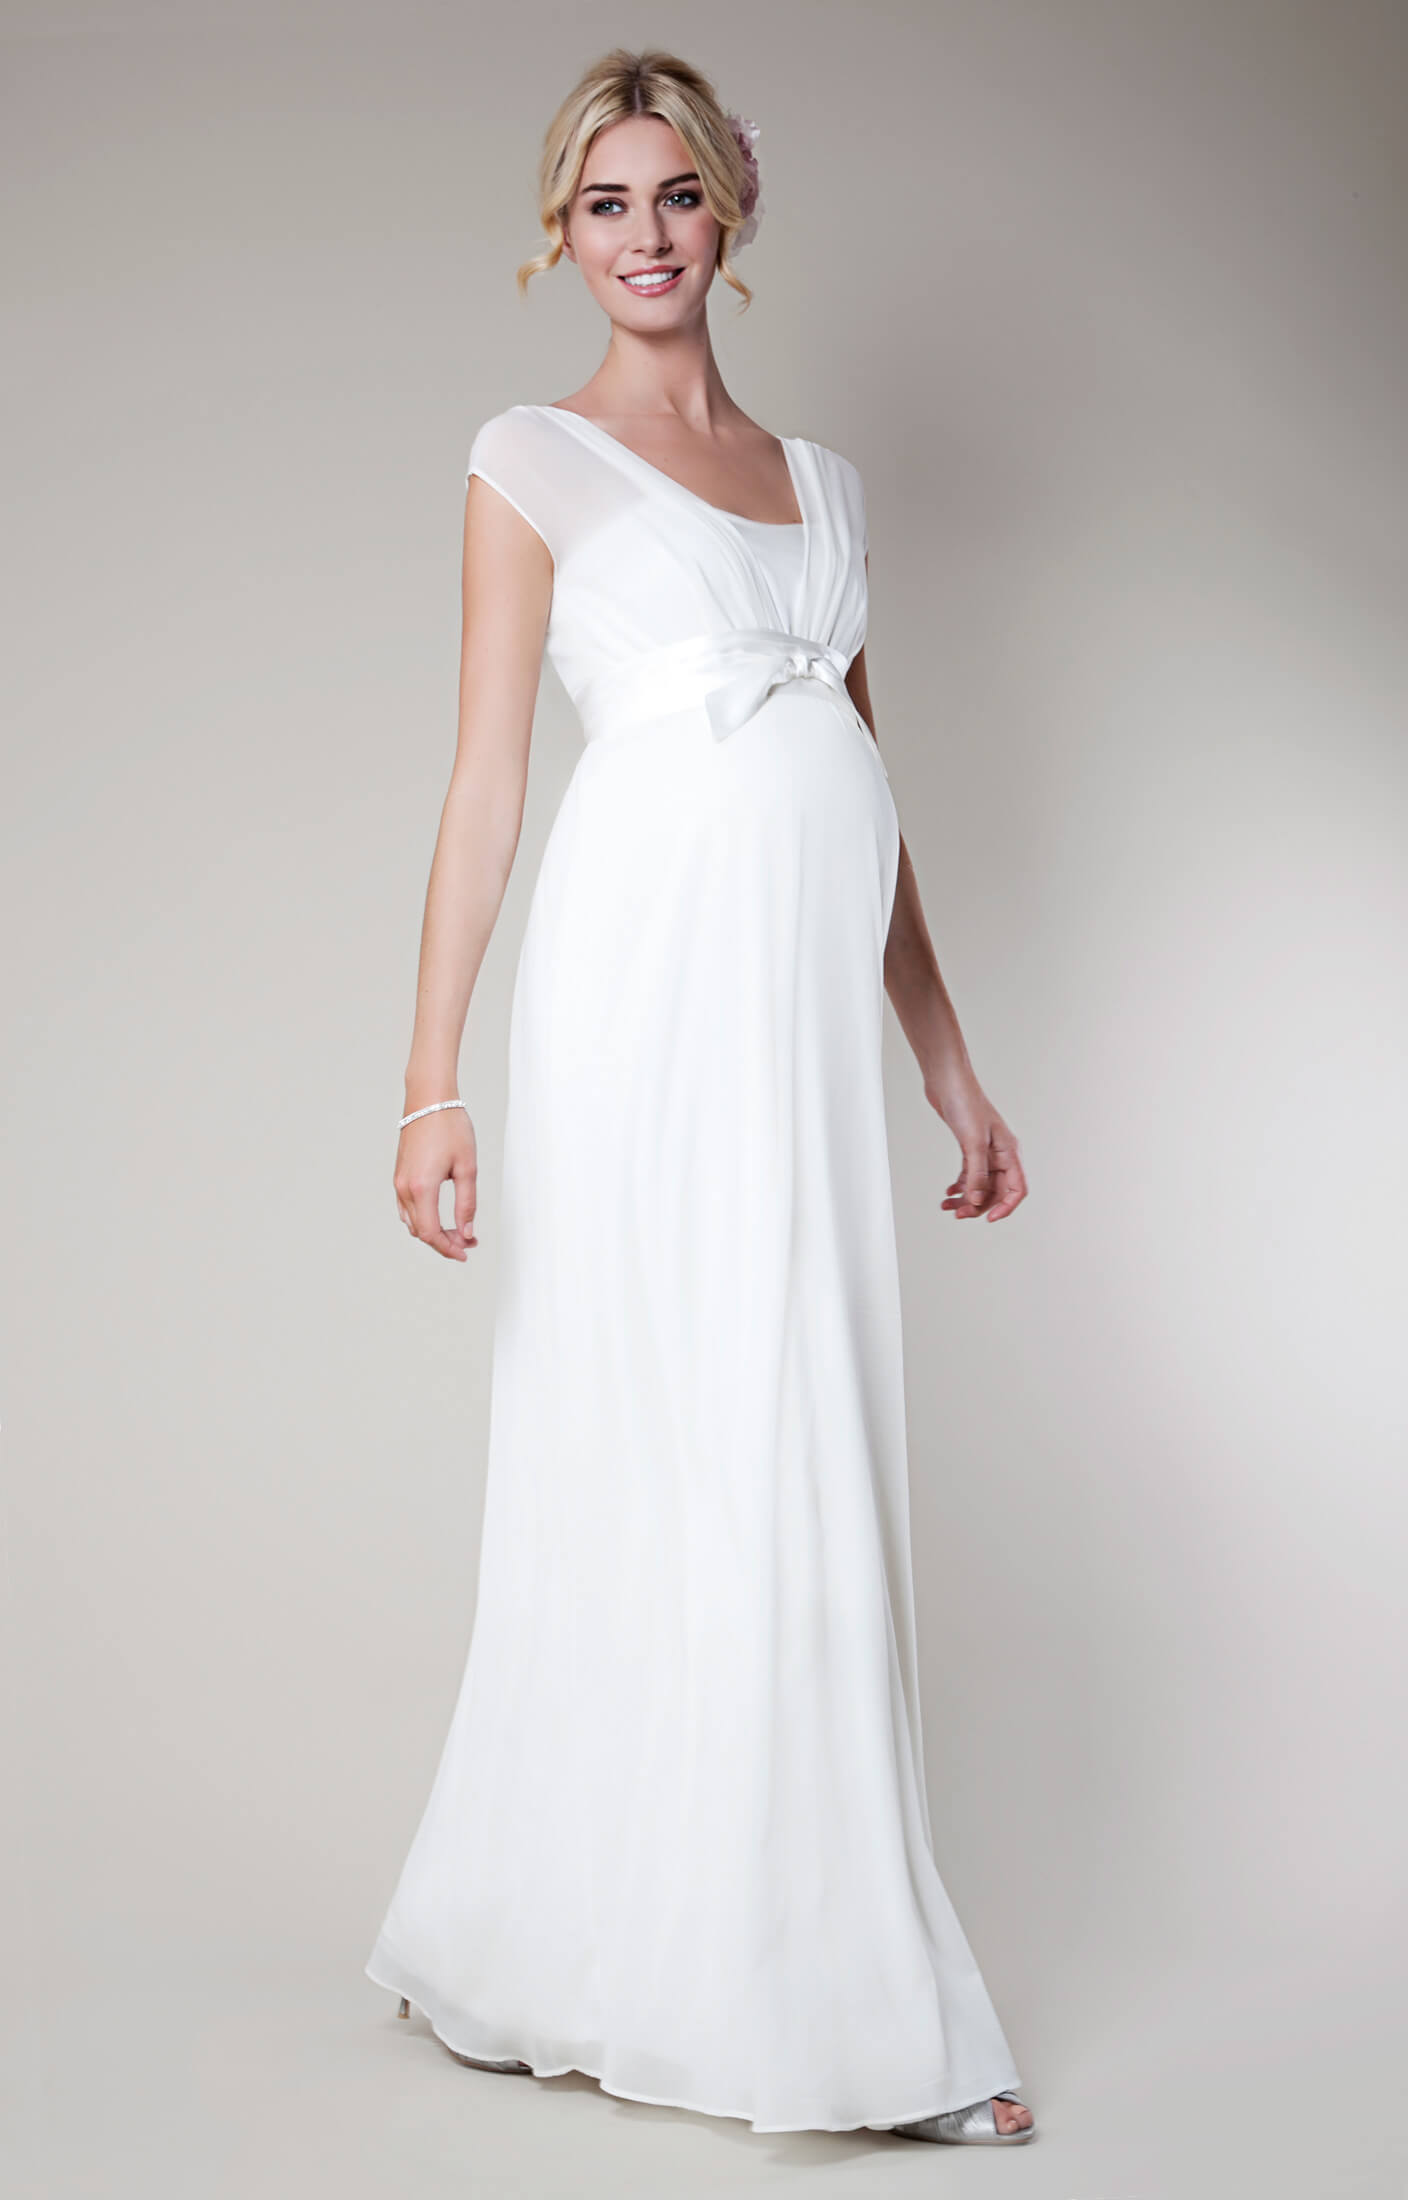 MATERNITY WEDDING DRESS - Mansene Ferele